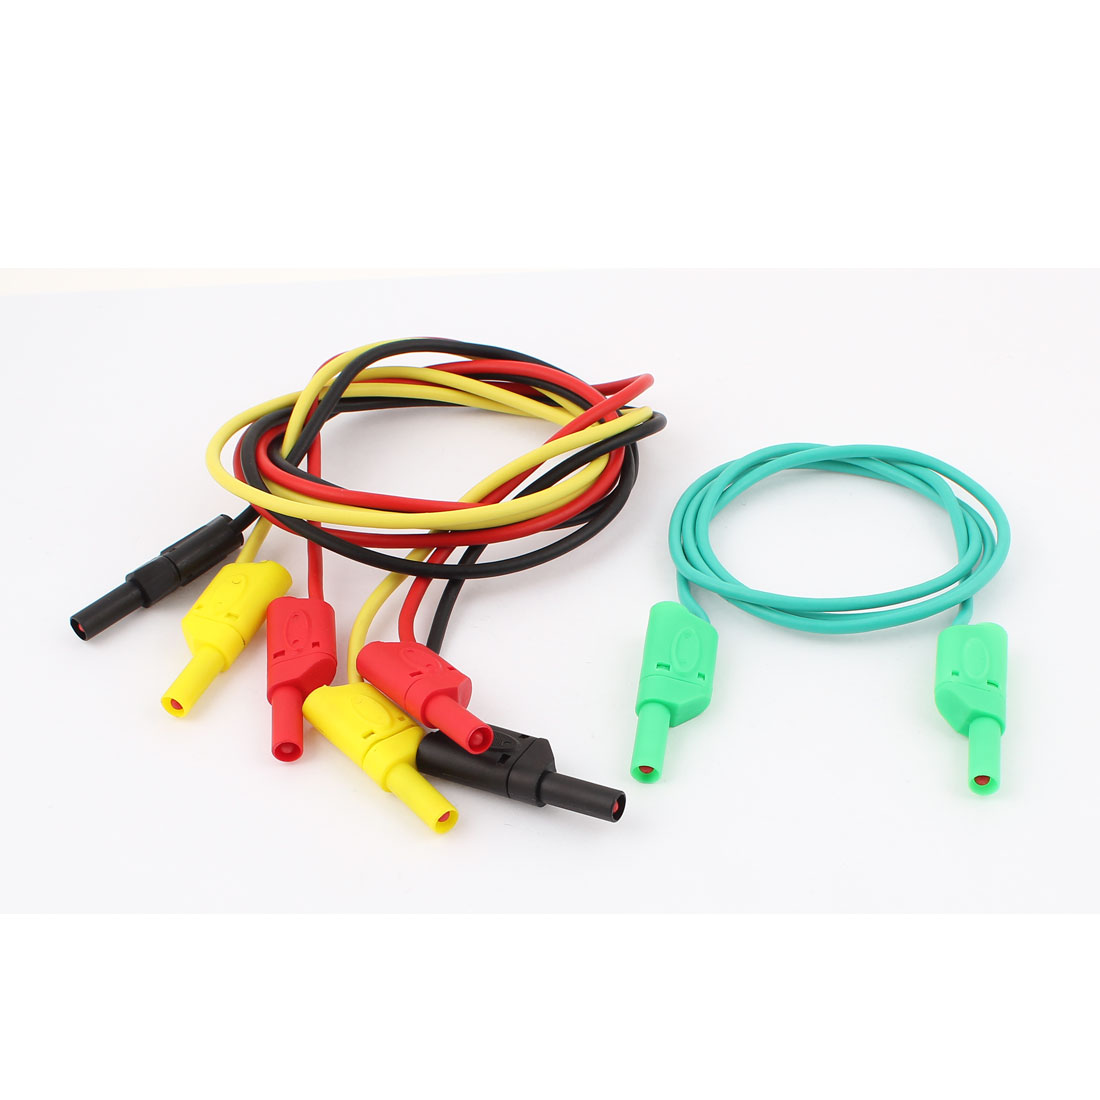 4 Pcs Sheathed 4mm Banana Connector Male to Male Test Lead Cable 10A-20A 1M Long